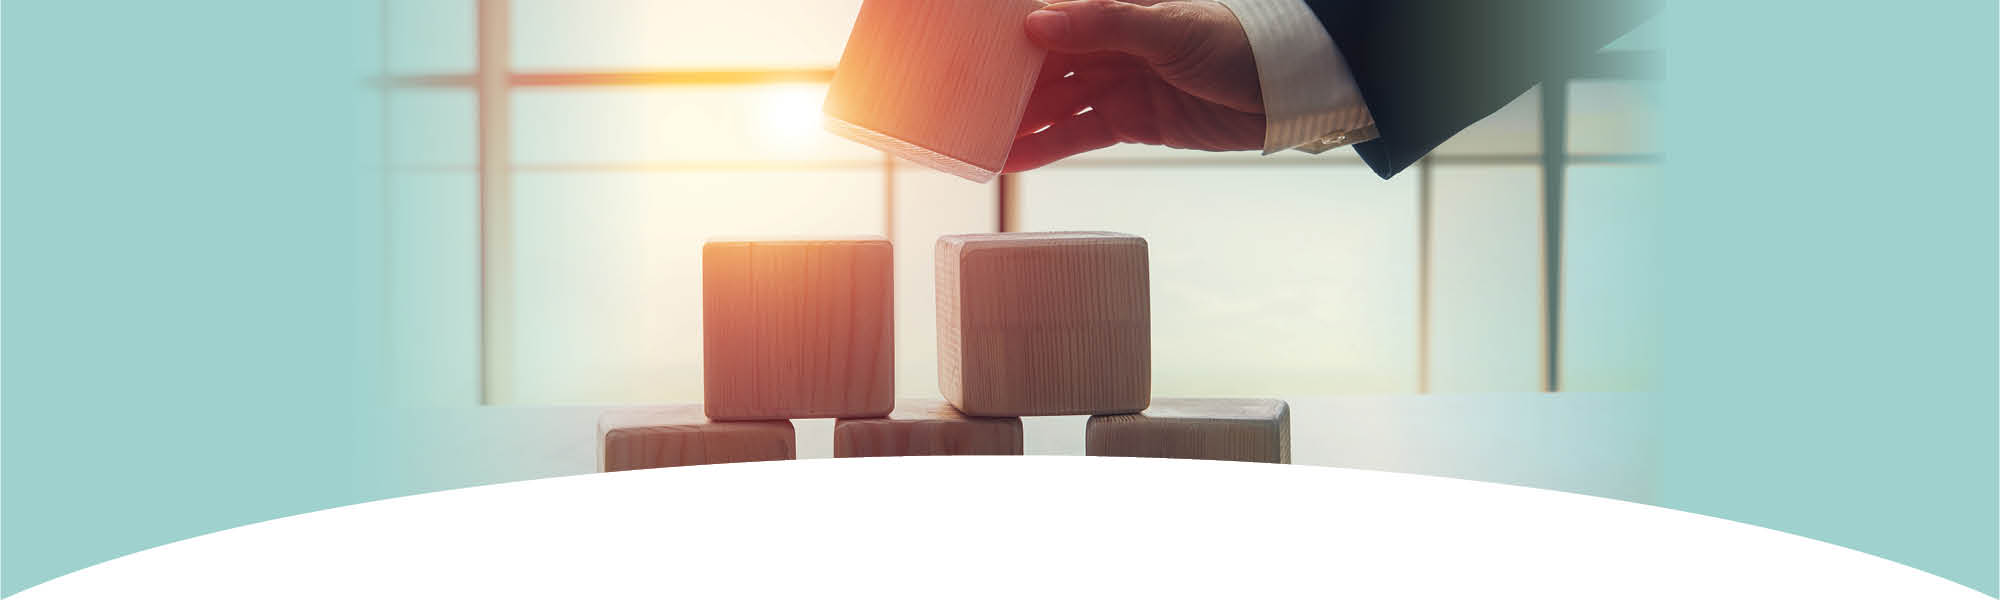 Impact and Special Initiatives - businessman stacking wooden blocks